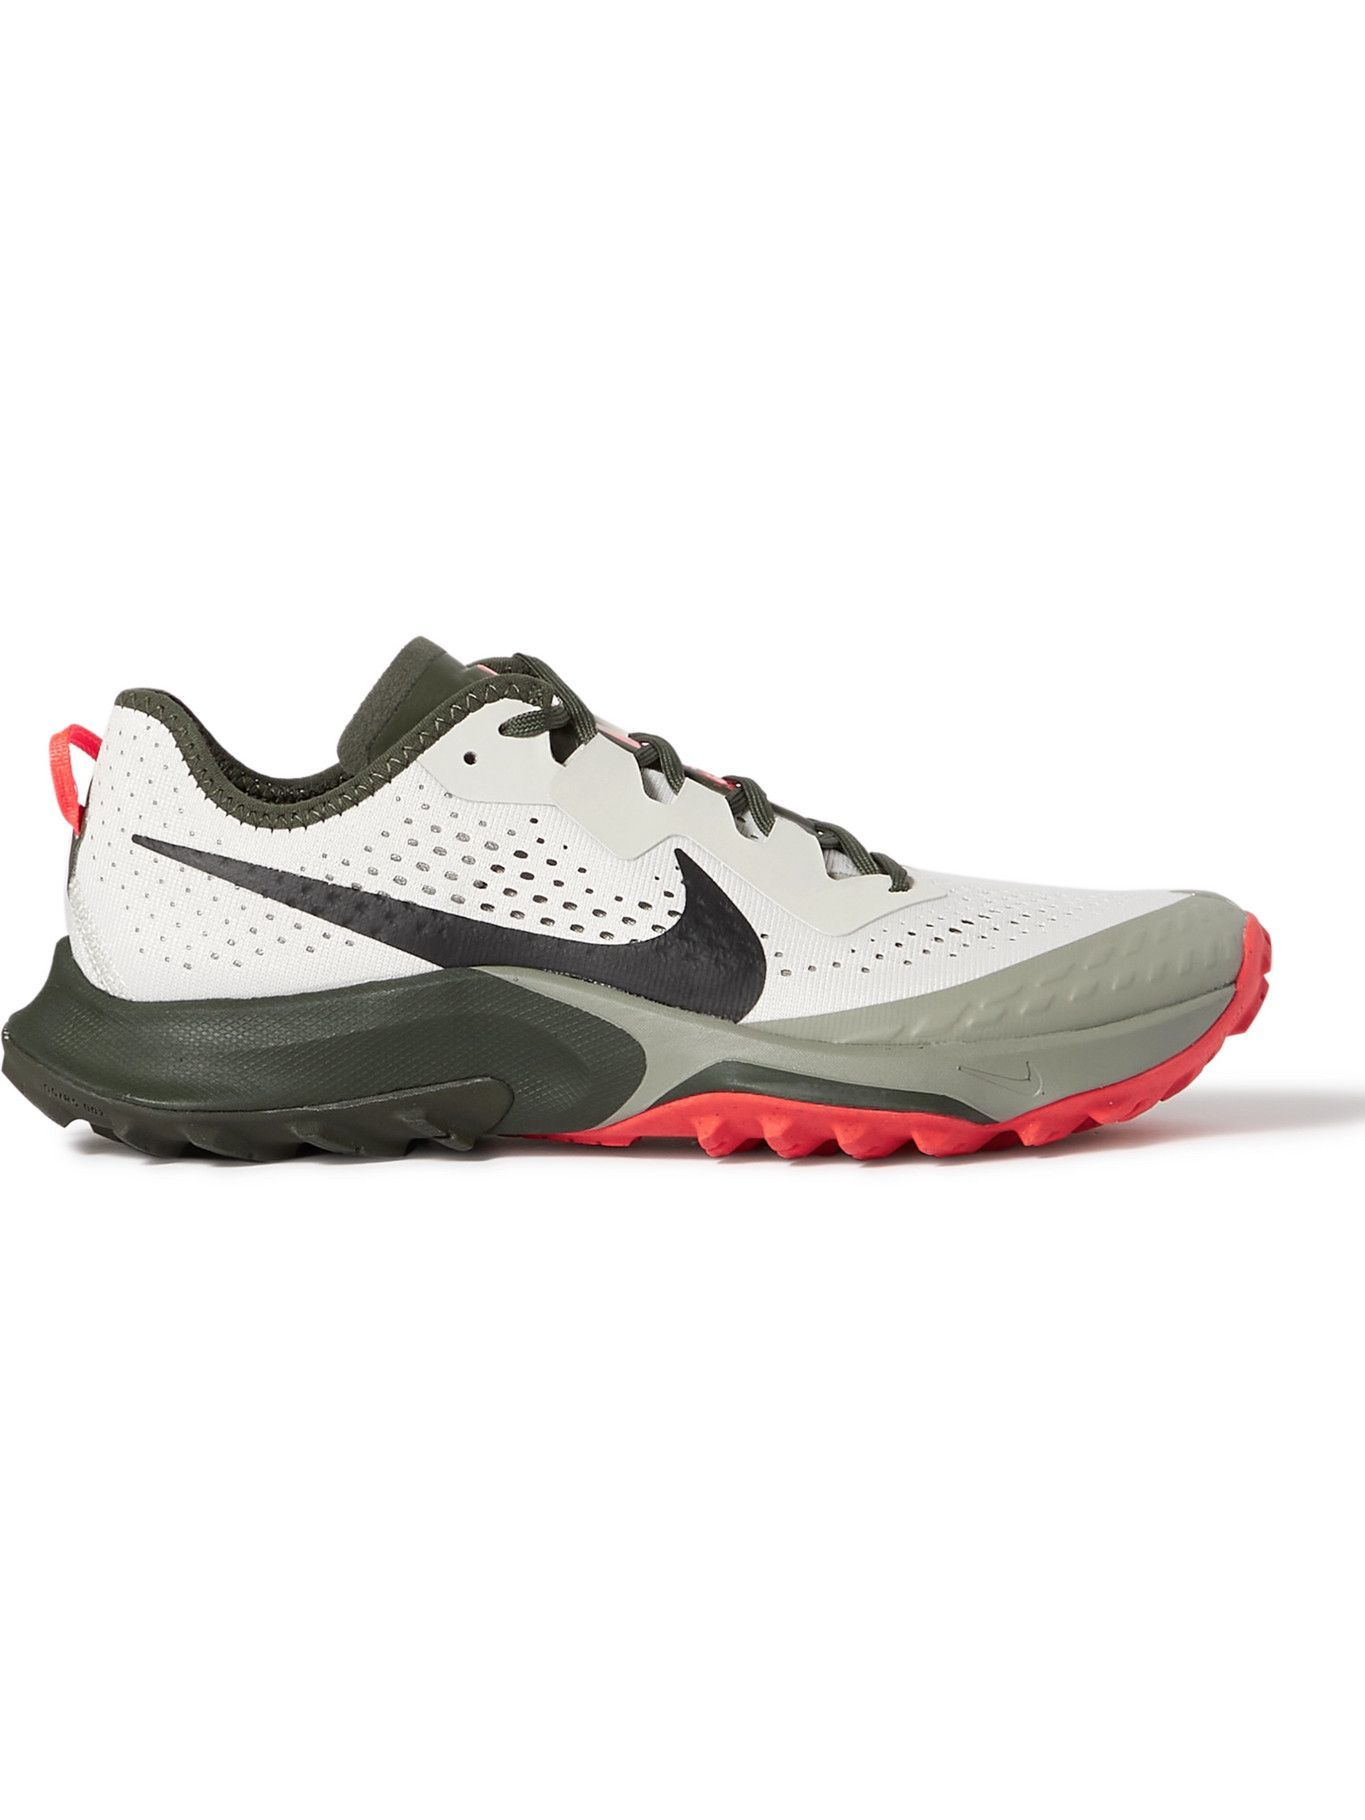 Photo: NIKE RUNNING - Air Zoom Terra Kiger 7 Rubber-Trimmed Mesh Running Sneakers - Neutrals